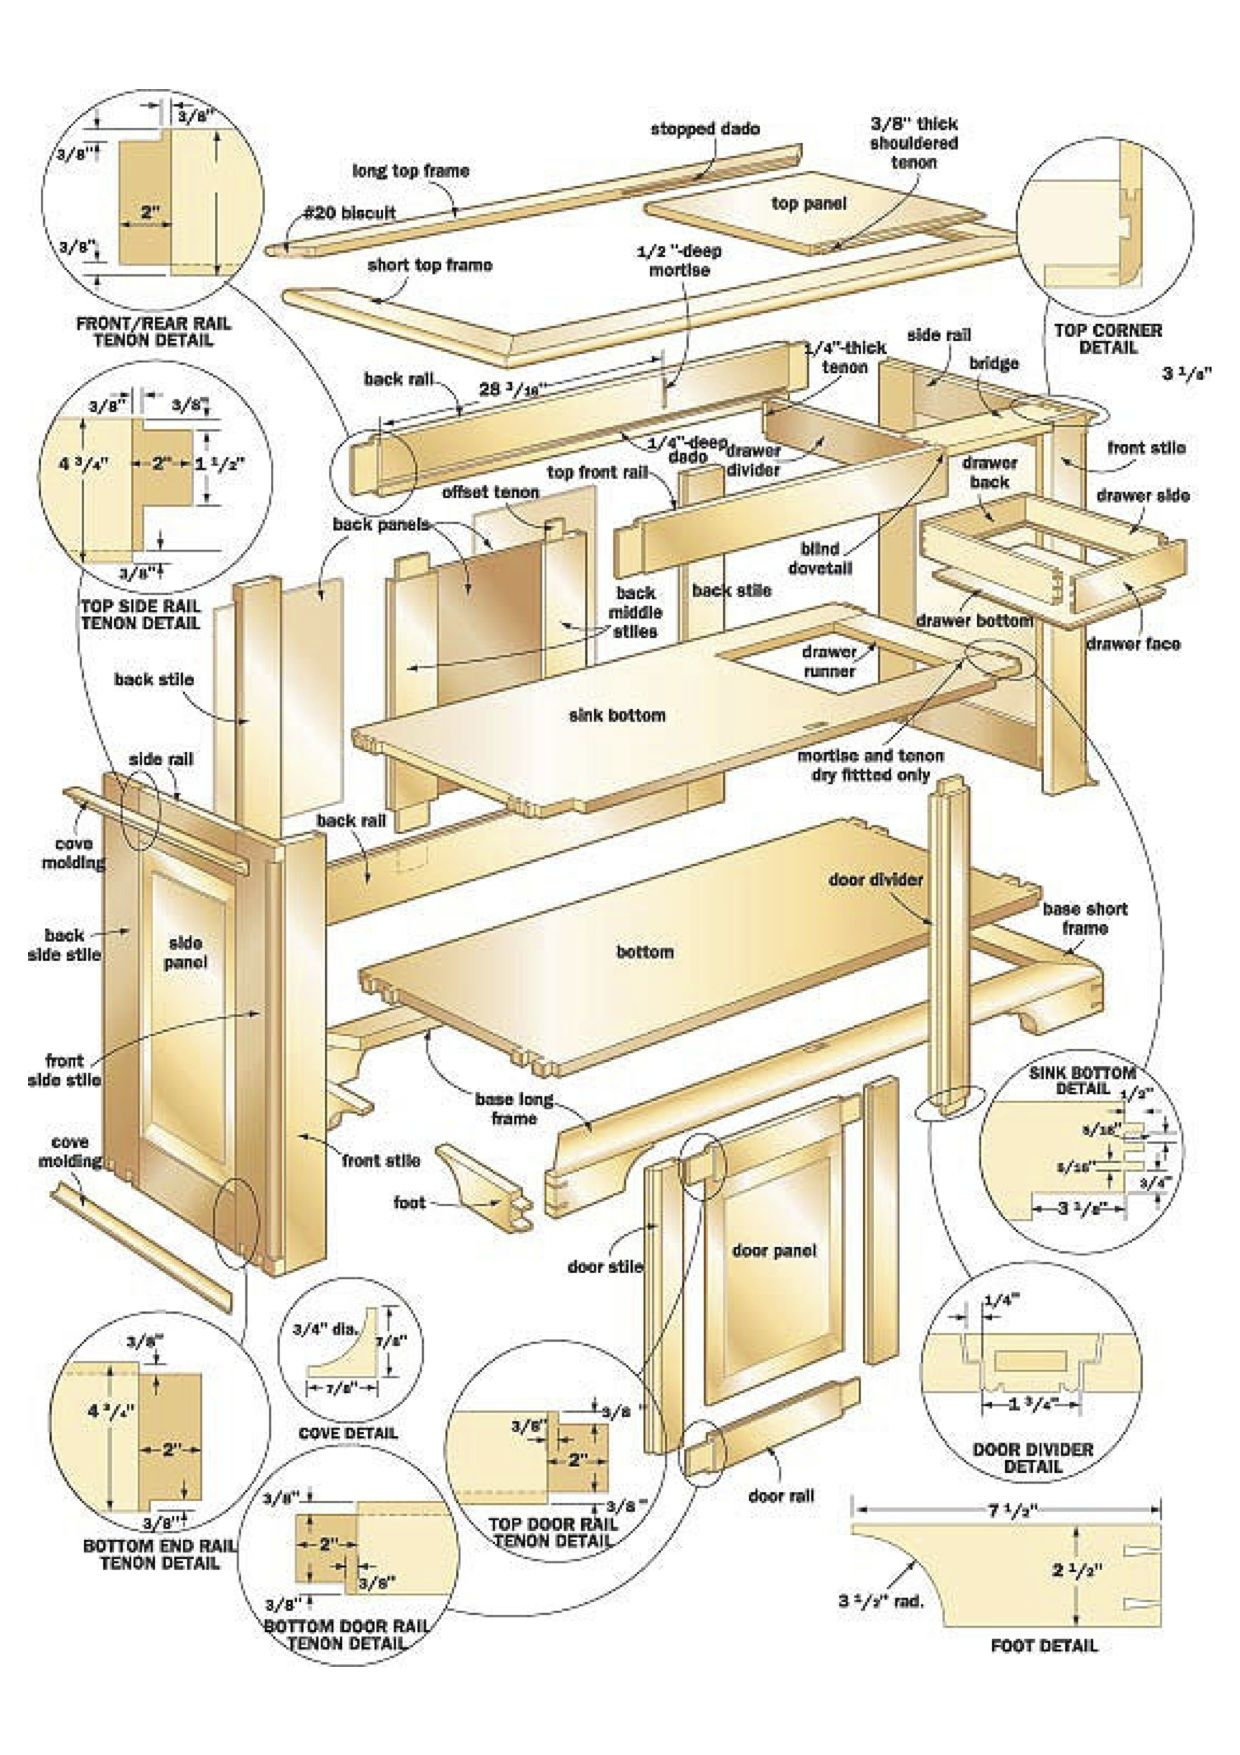 Download Free Woodworking Plans Woodworking Projects Woodworking Projects Plans Woodworking Plans Woodworking Plans Free